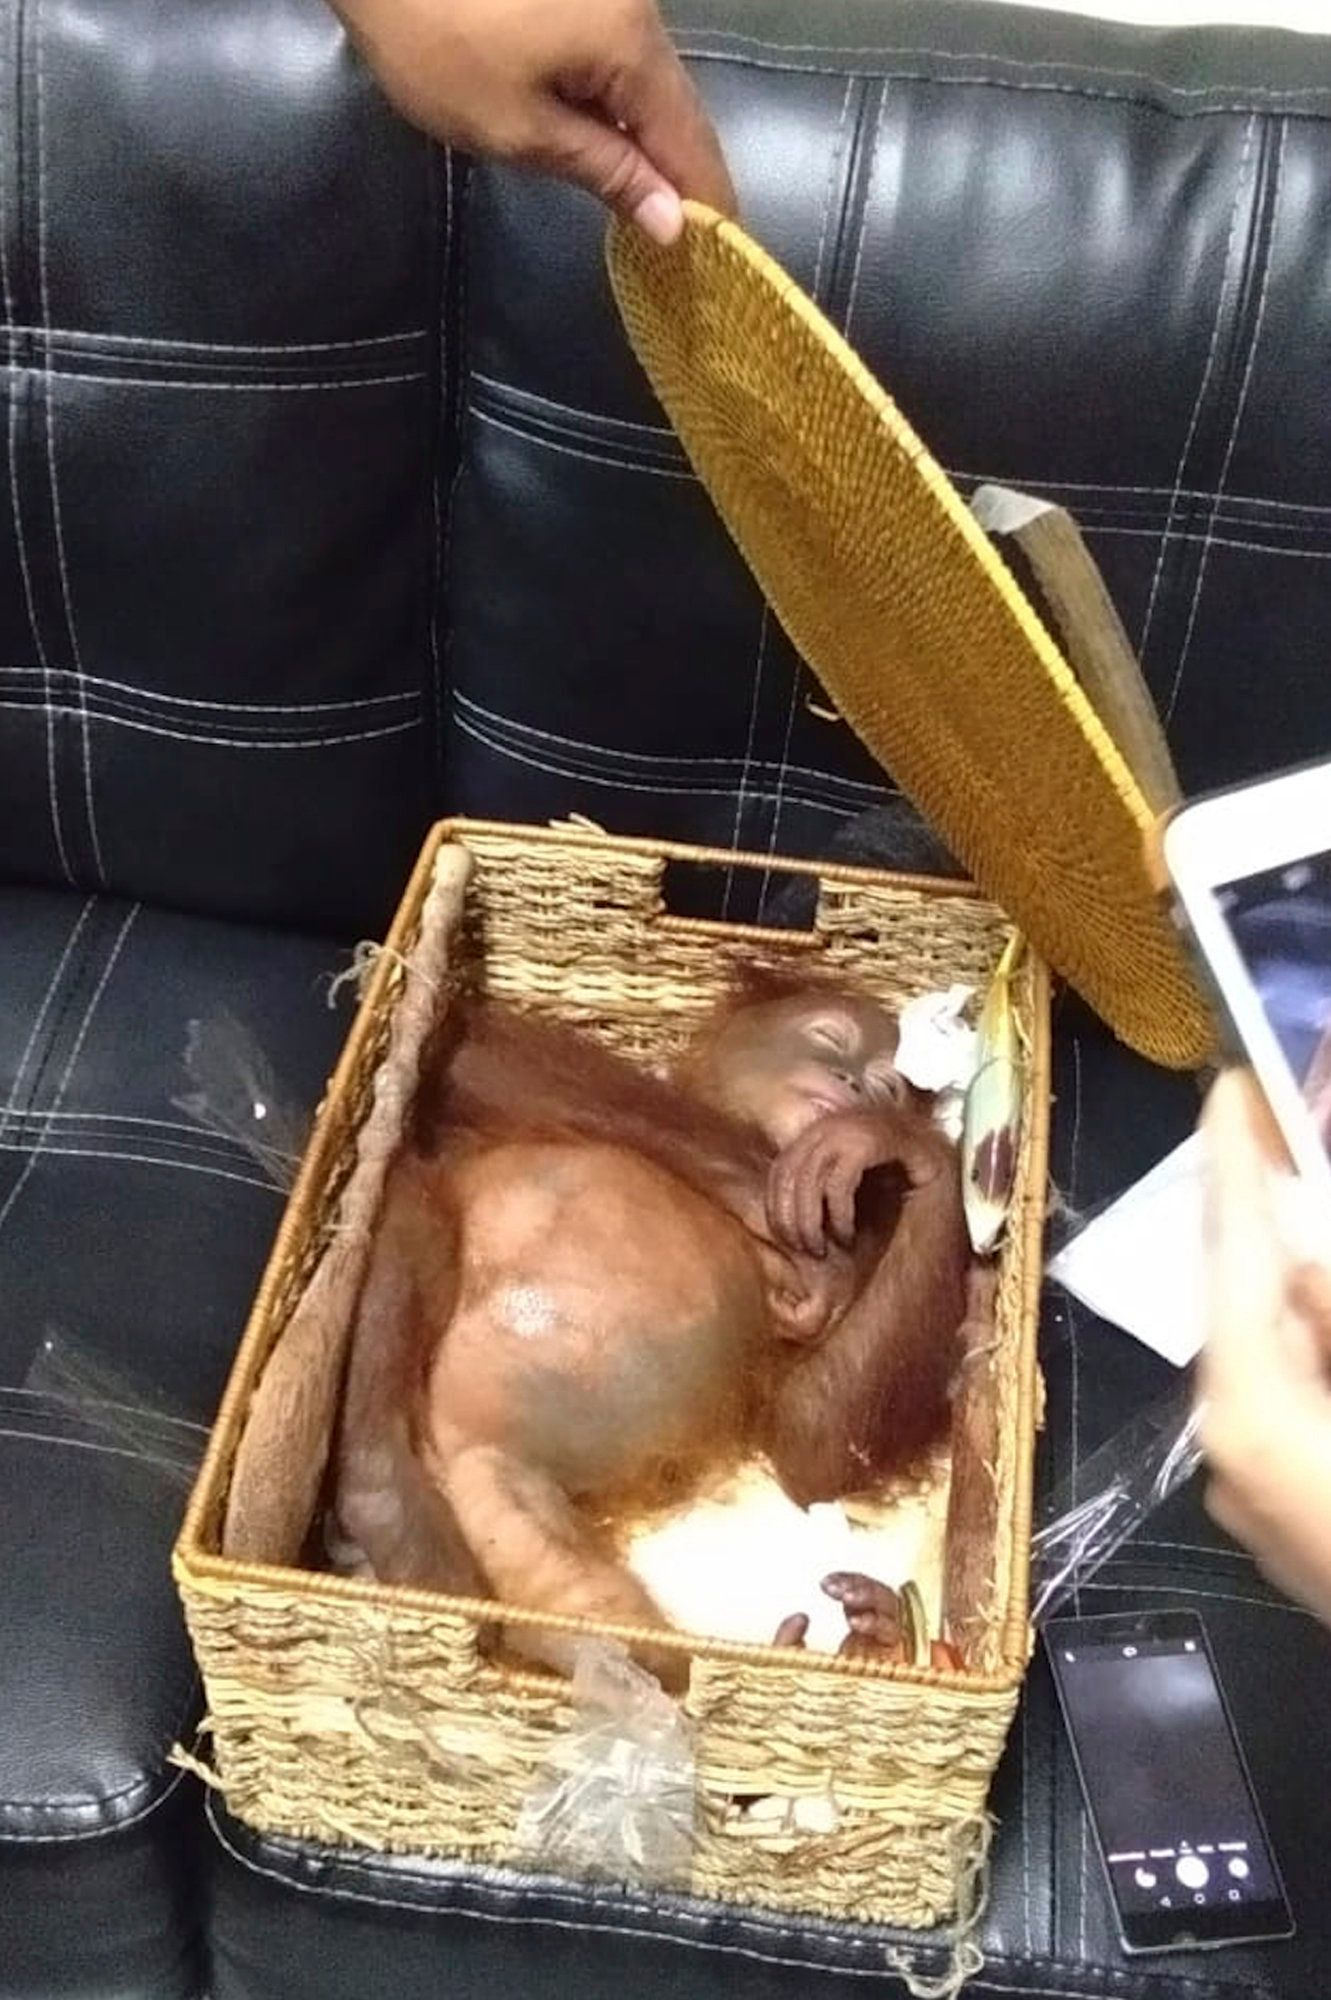 Drugged Orangutan Discovered In Russian Tourist's Suitcase At Bali Airport